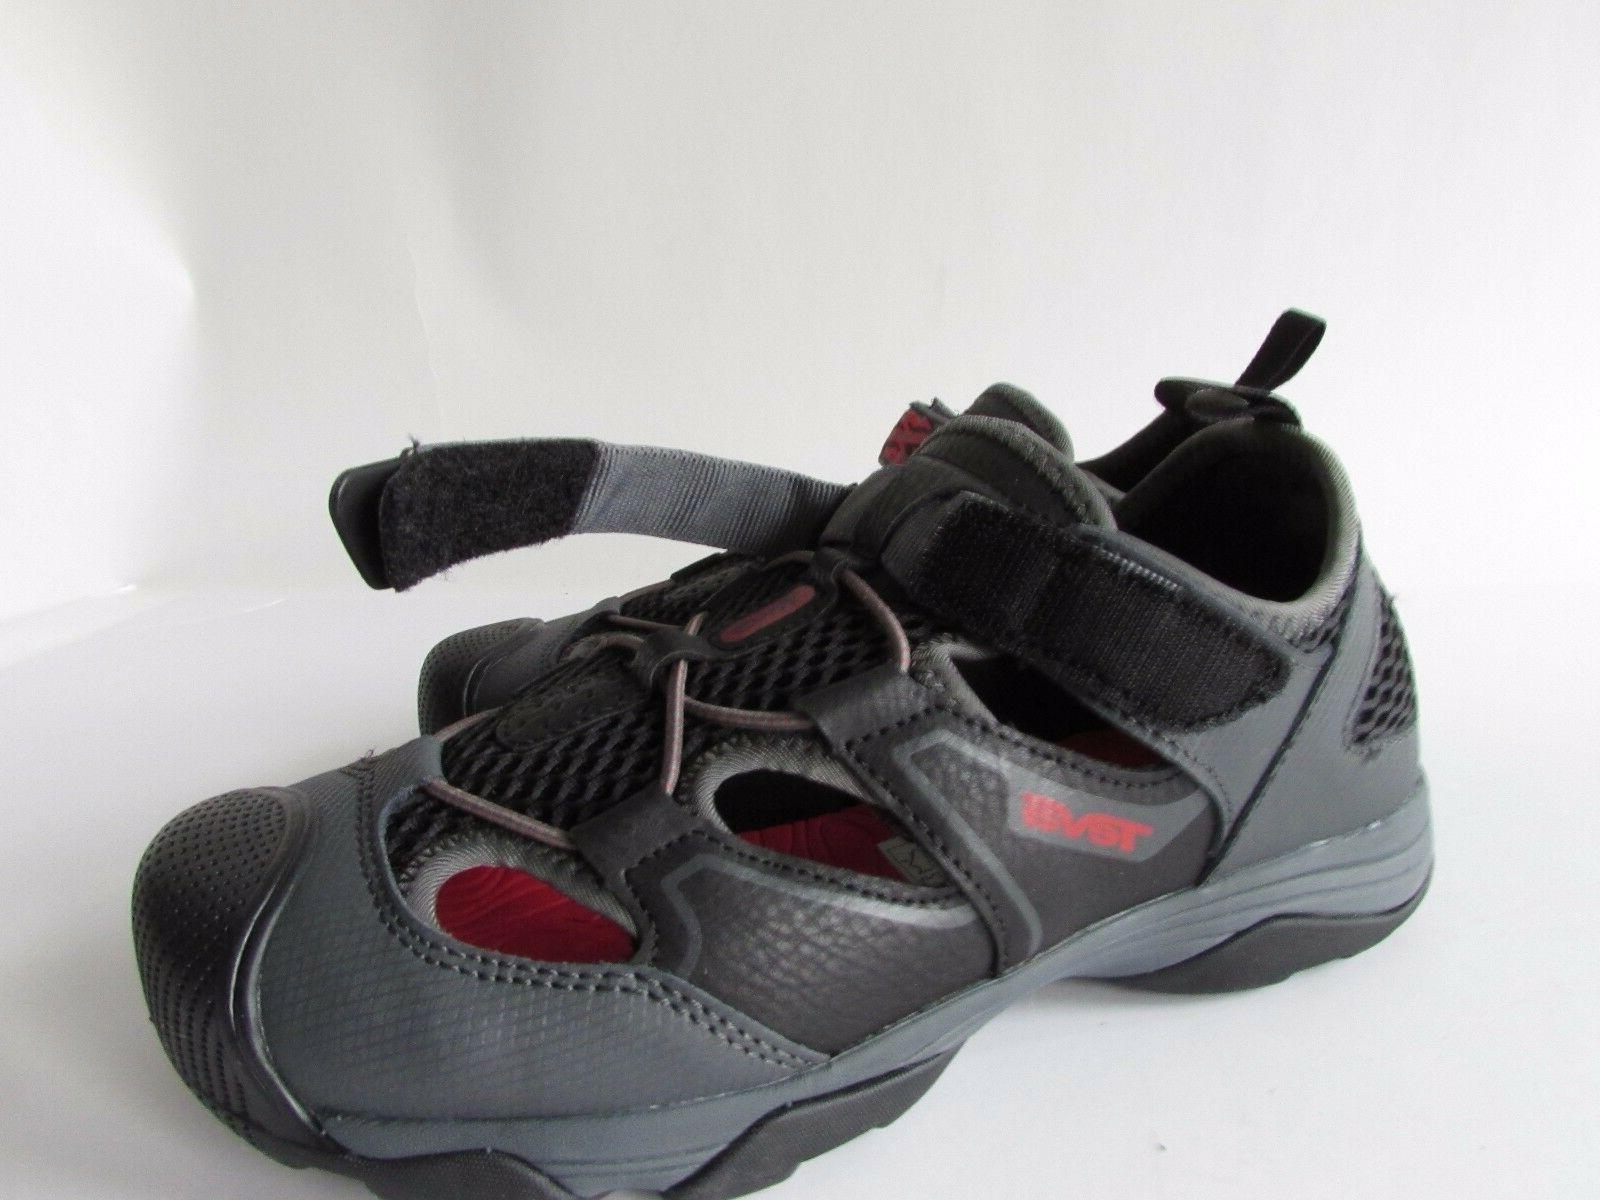 TEVA Rollick Water Shoes, Boys size NEW